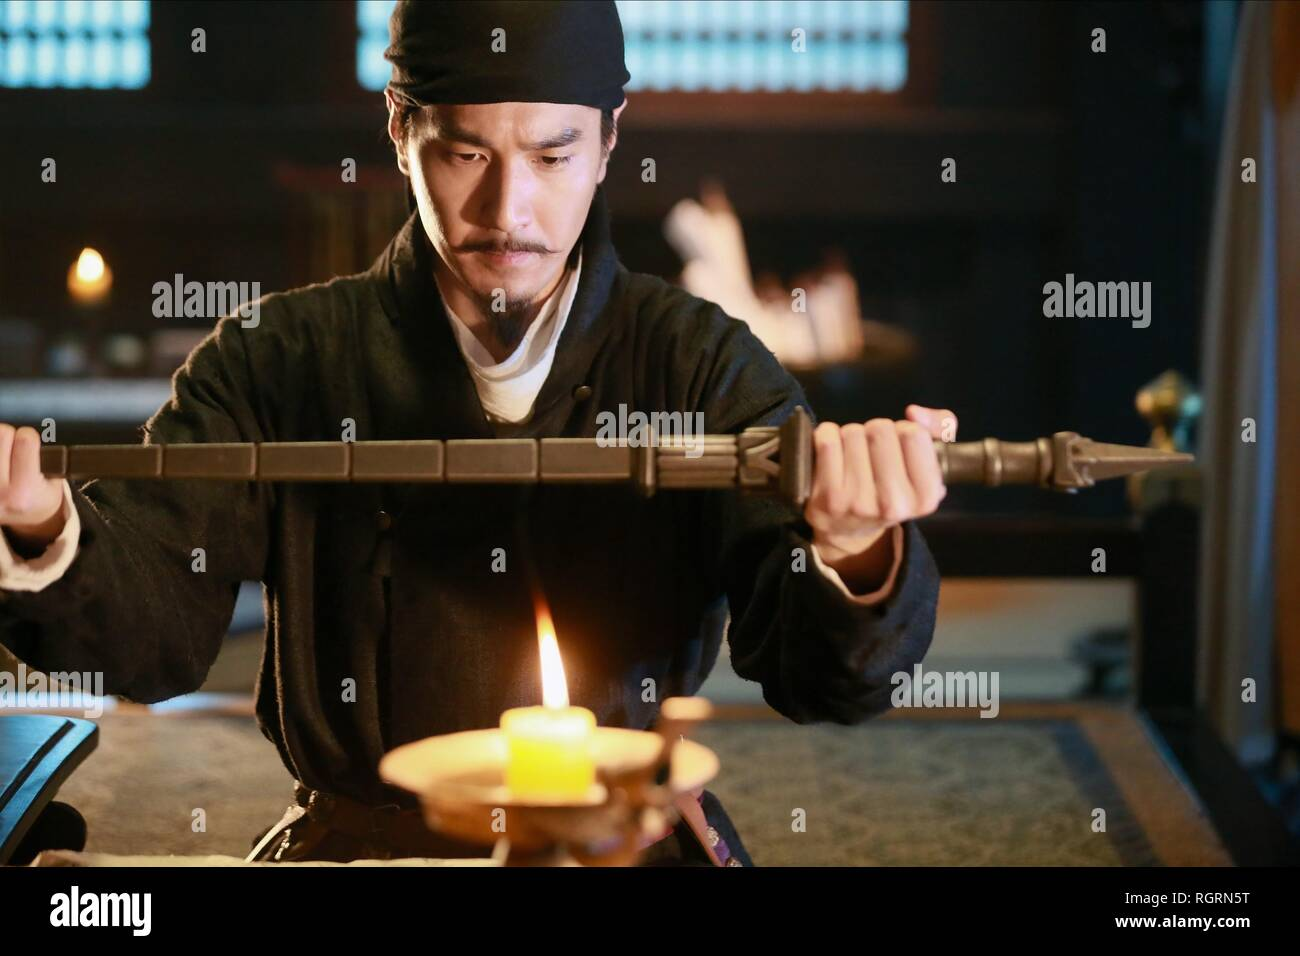 MARK CHAO DETECTIVE DEE: THE FOUR HEAVENLY KINGS; DI RENJIE ZHI SIDATIANWANG (2018) - Stock Image